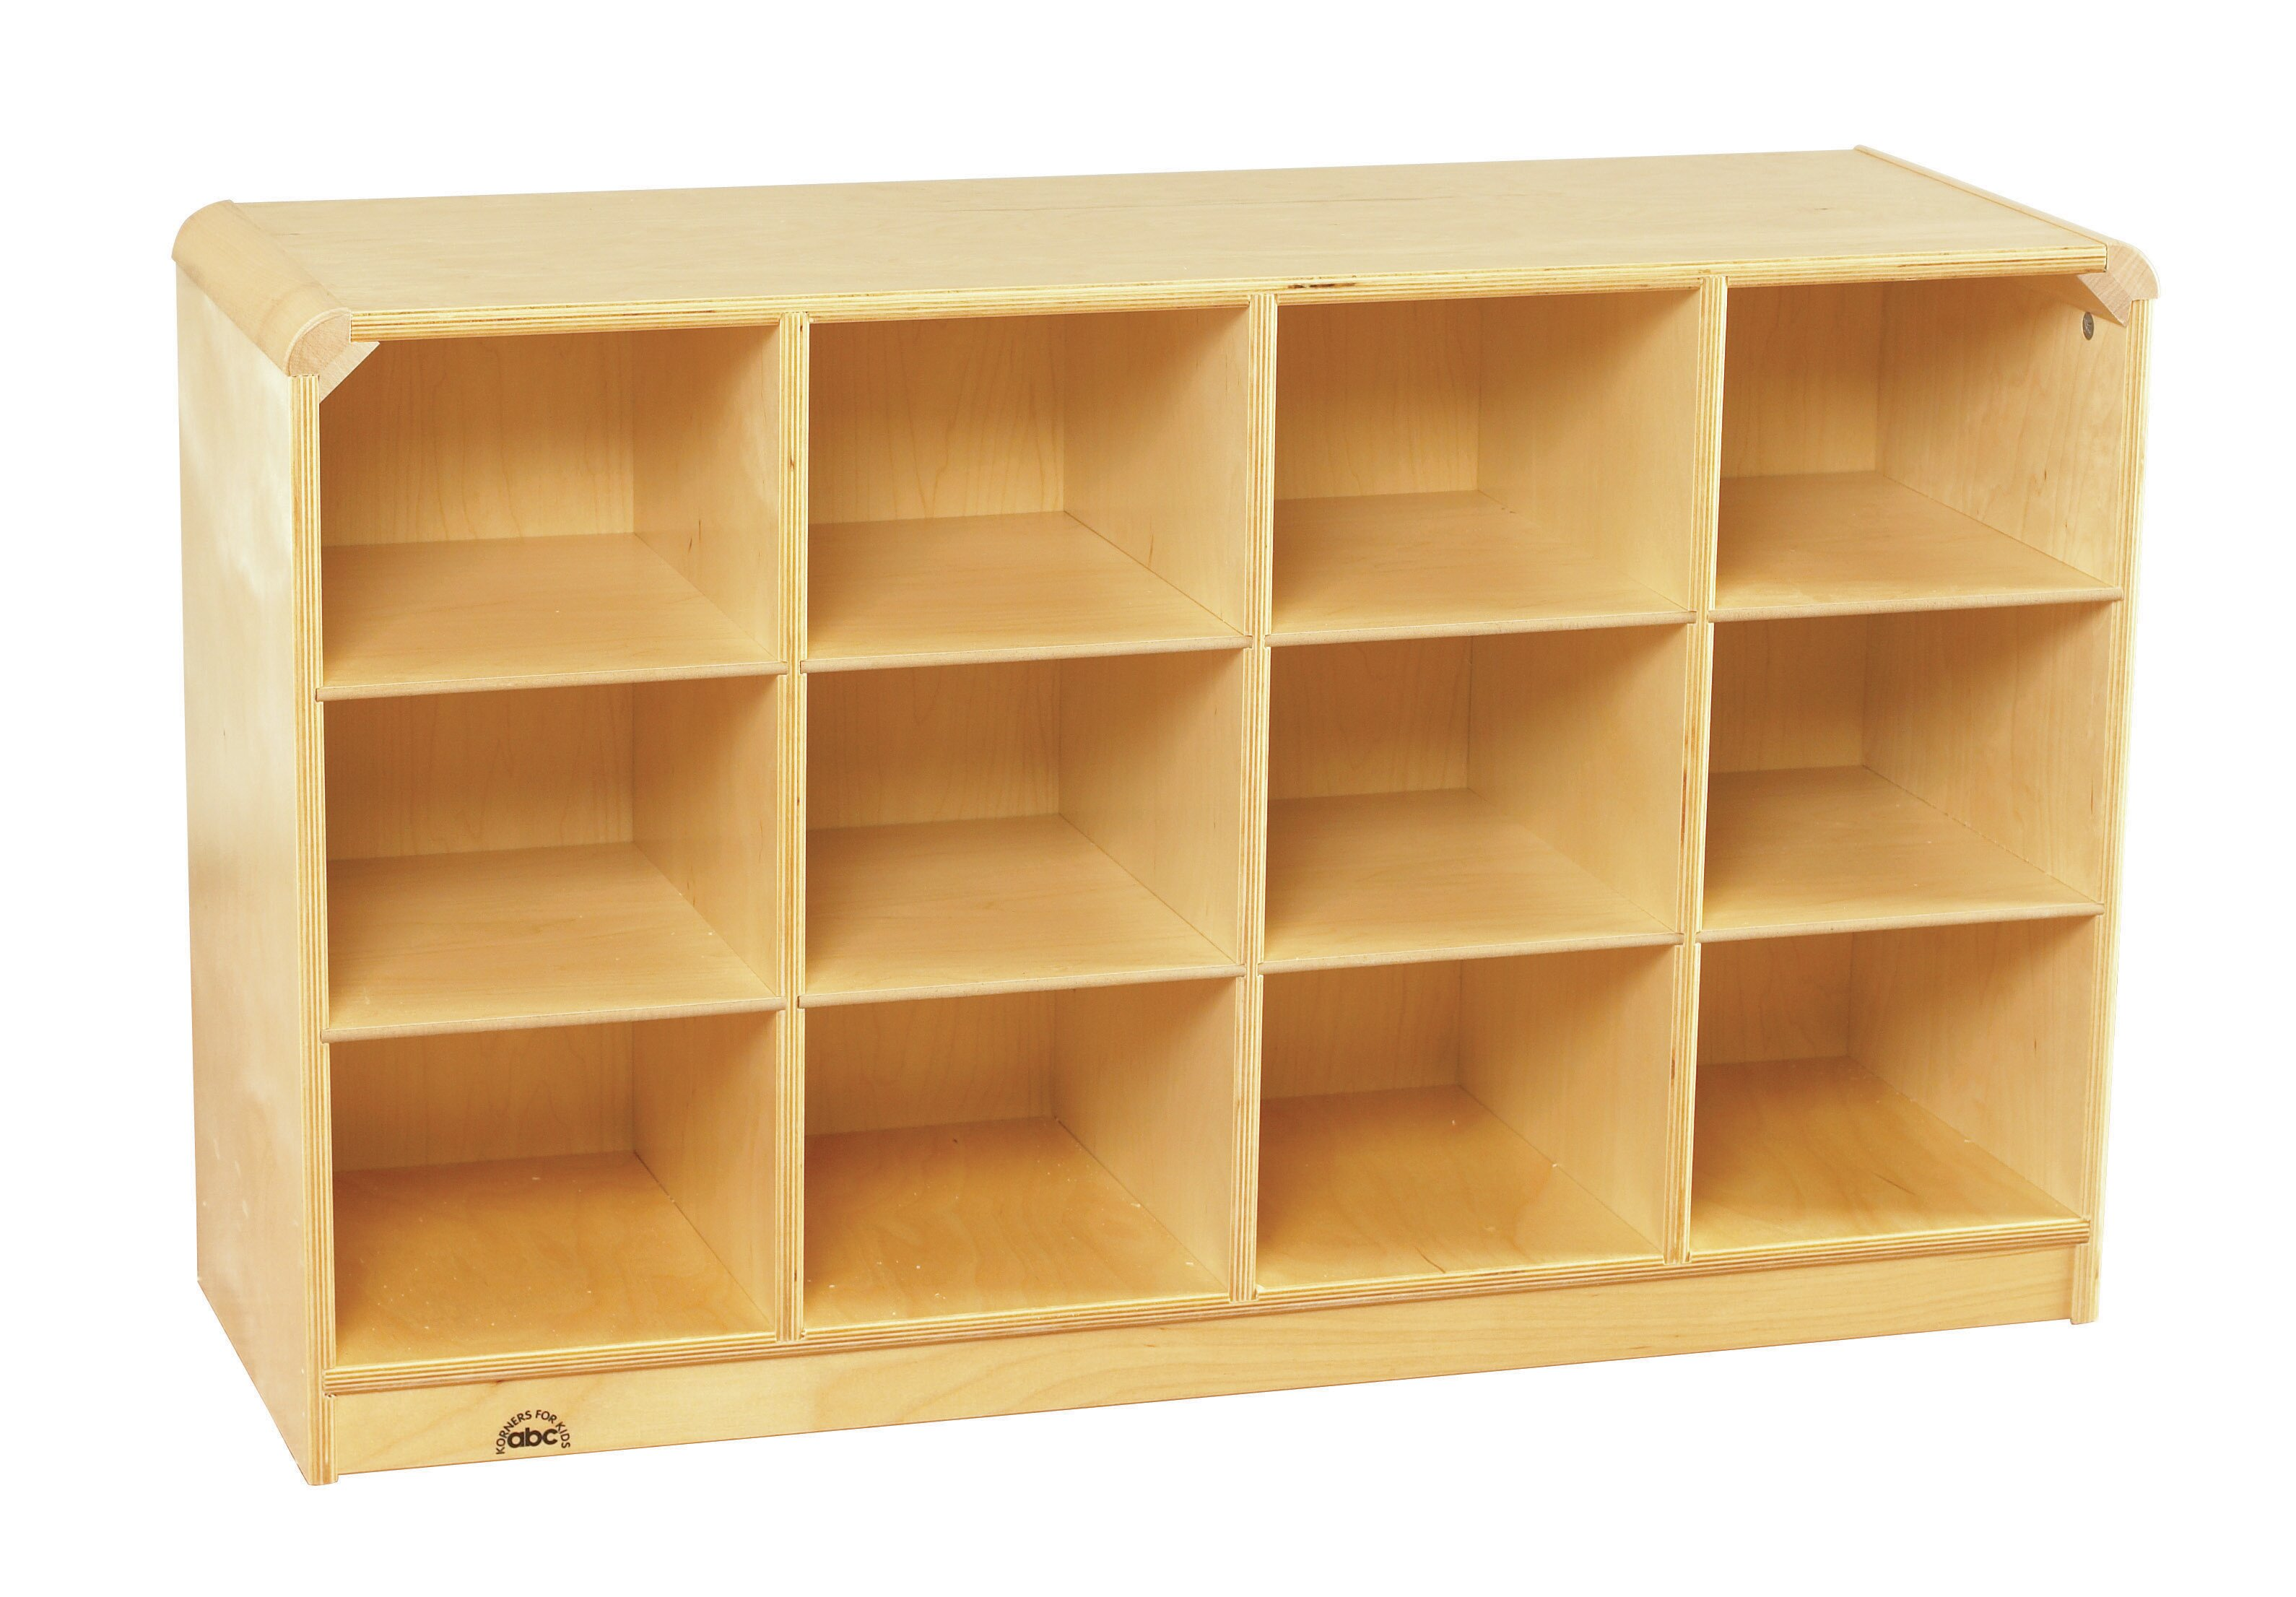 Childcraft 12 Compartment Cubby With Casters Reviews Wayfair